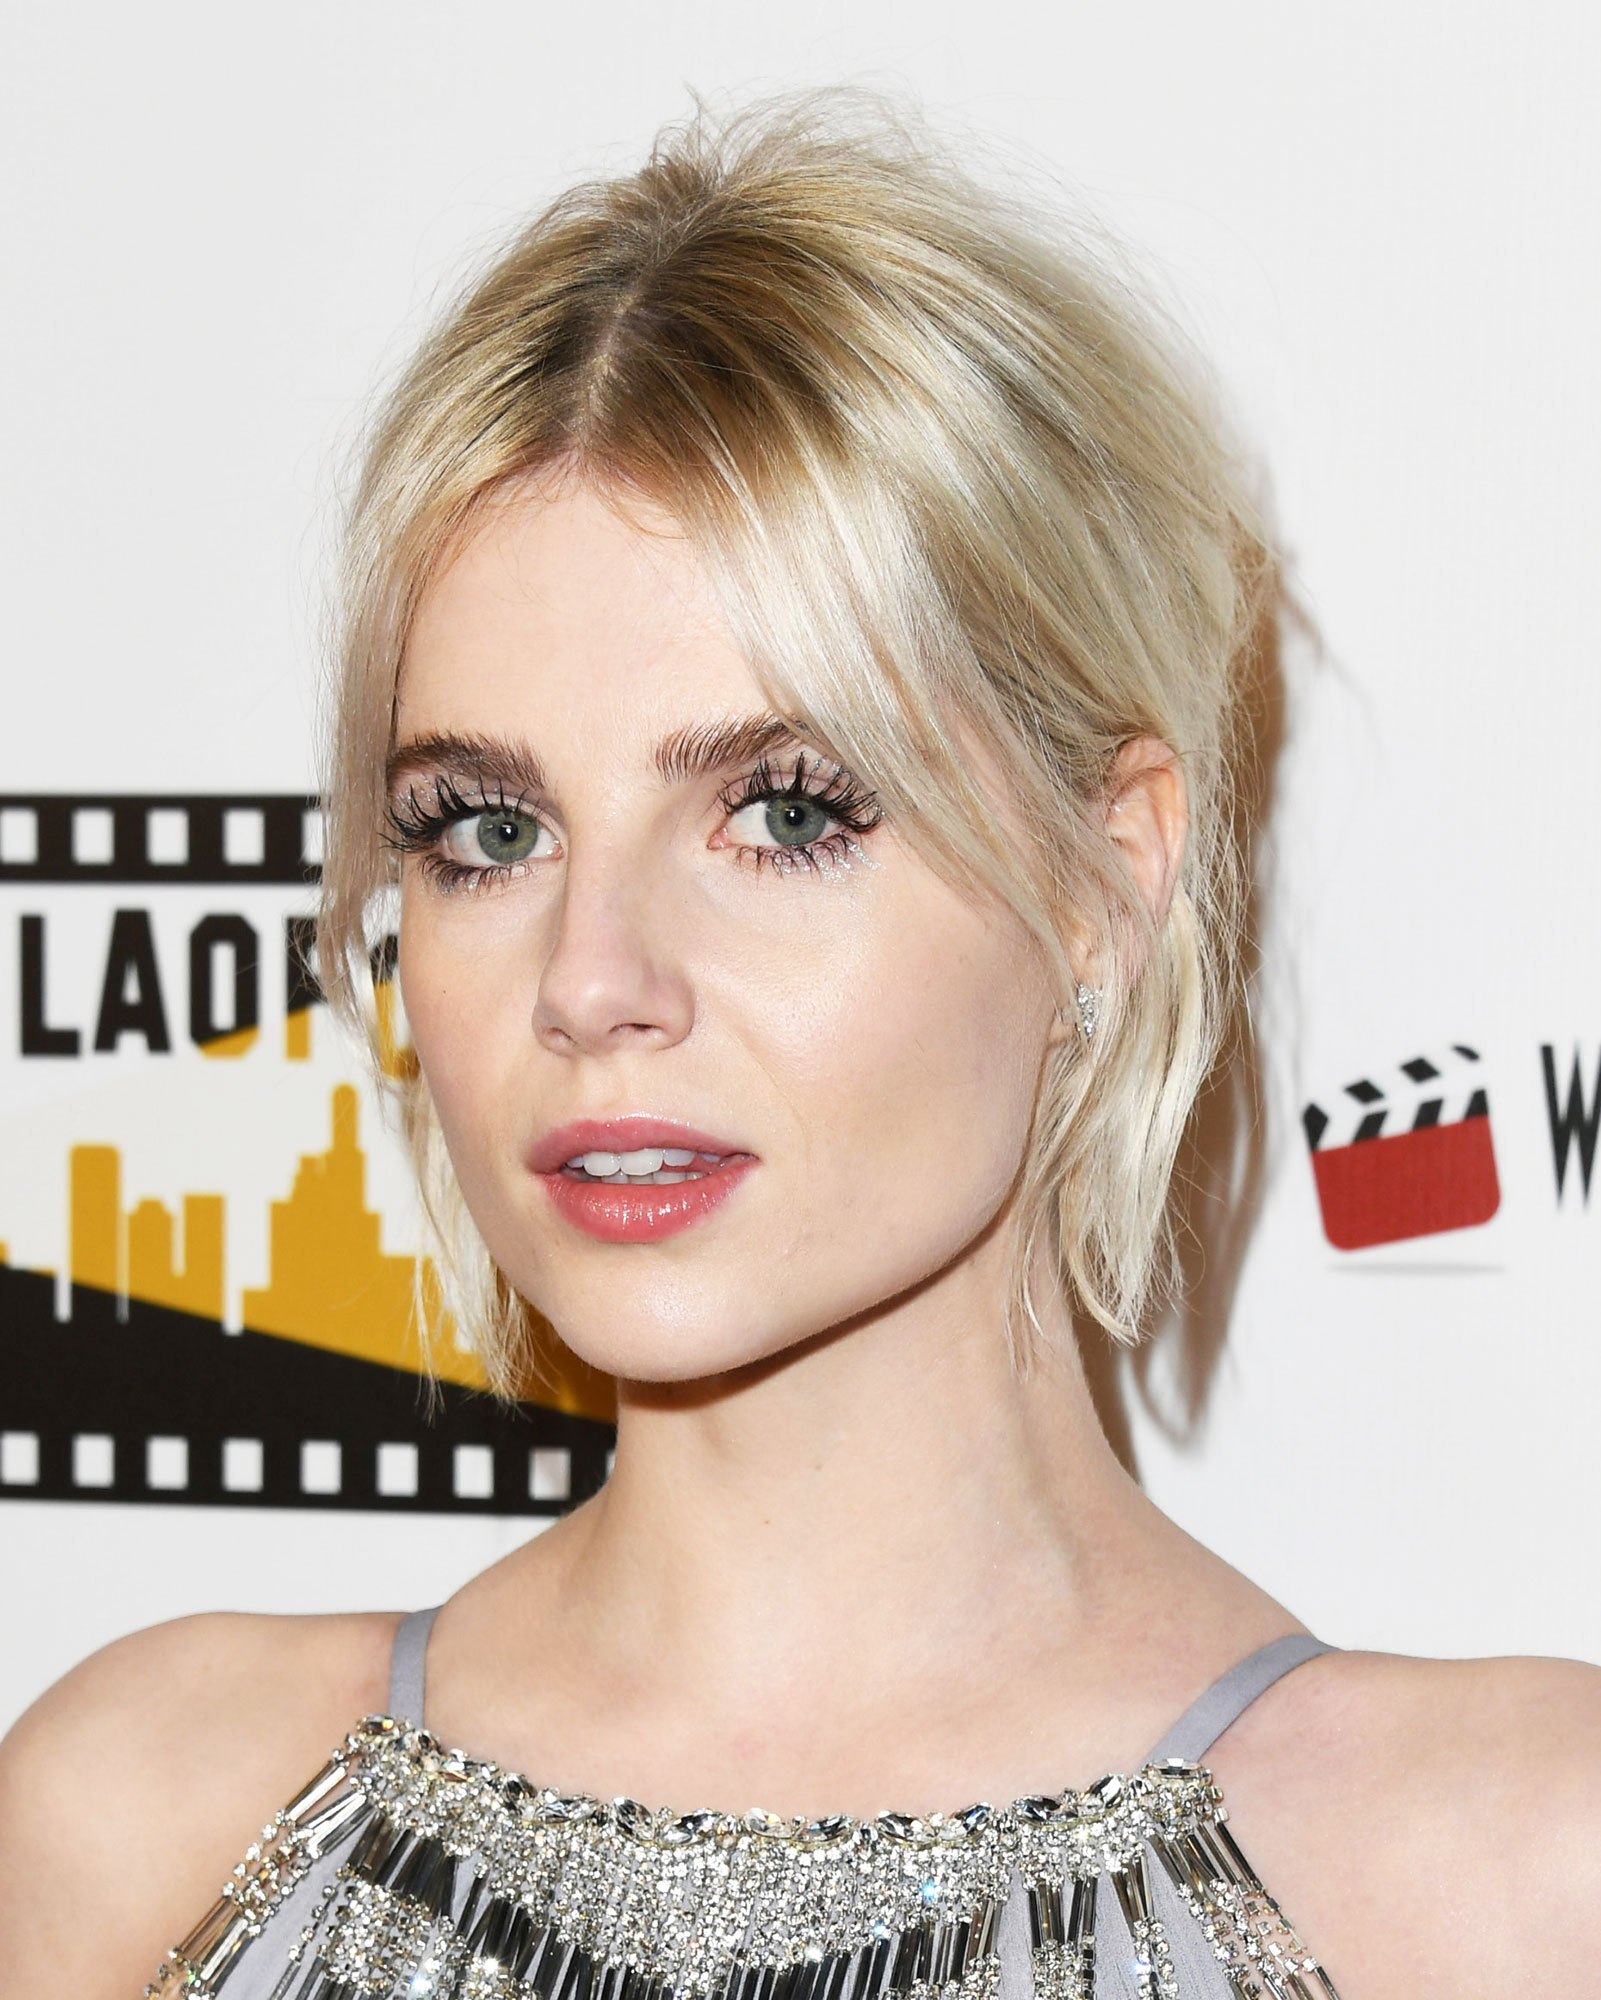 Lucy Boynton Celebs Are Here With All the Coachella Beauty Inspo You Need - David Bowie's Ziggy Stardust was the inspiration behind the Bohemian Rhapsody actress' sparkly lash look at the Los Angeles Online Film Critics Society Awards. Makeup artist Jo Baker used a combo of metallic shadows and Lemonhead.